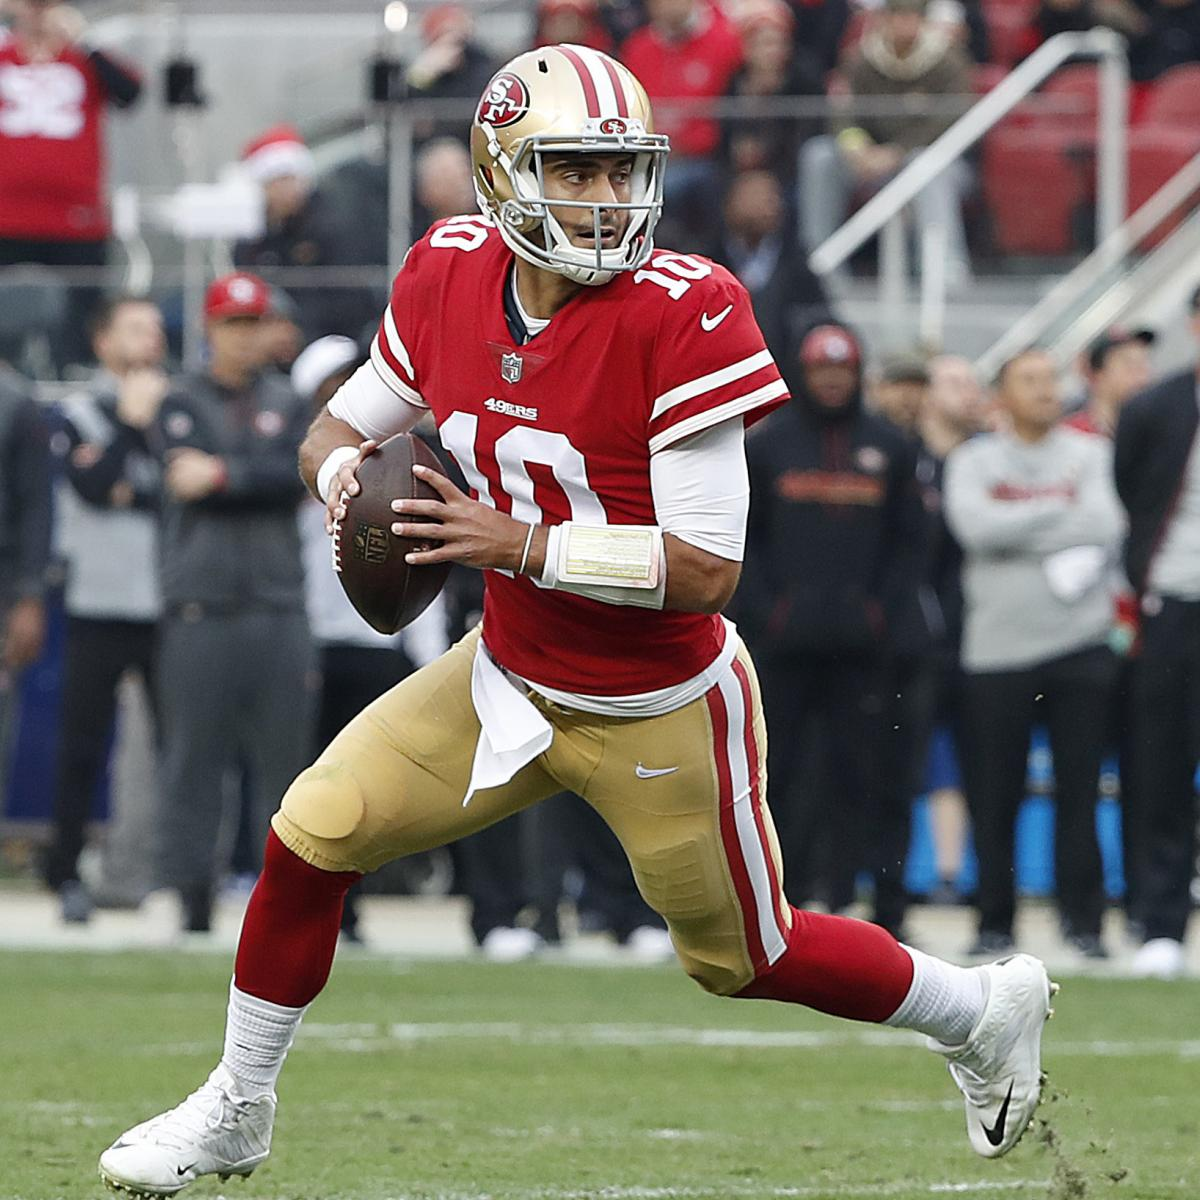 49ers' Jimmy Garoppolo Carted off Field After Suffering Knee Injury vs. Chiefs